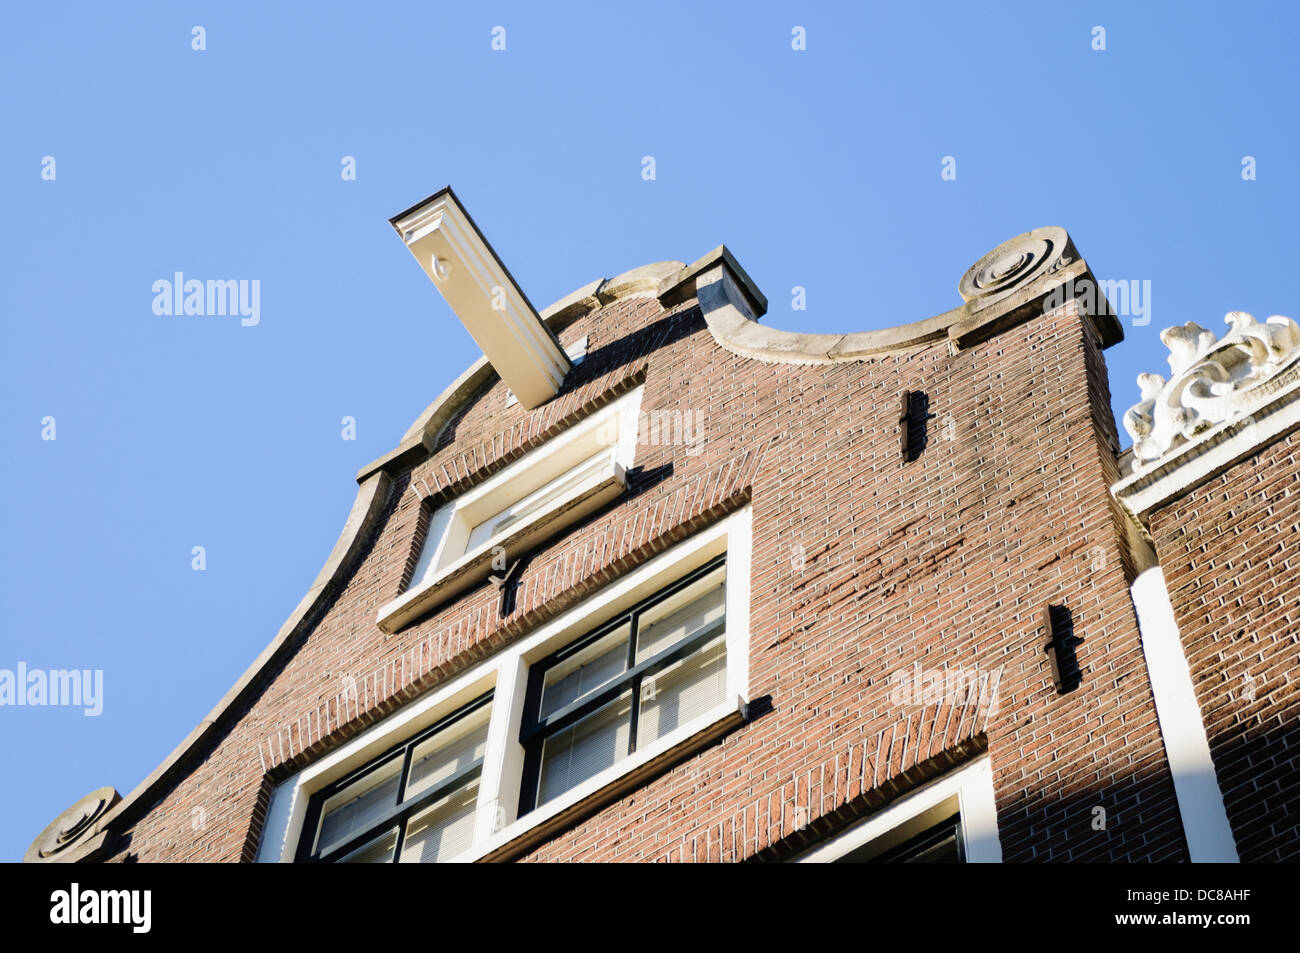 Hook on the roof of a house in Amsterdam, to allow owners to winch furniture and large objects into upper floors - Stock Image